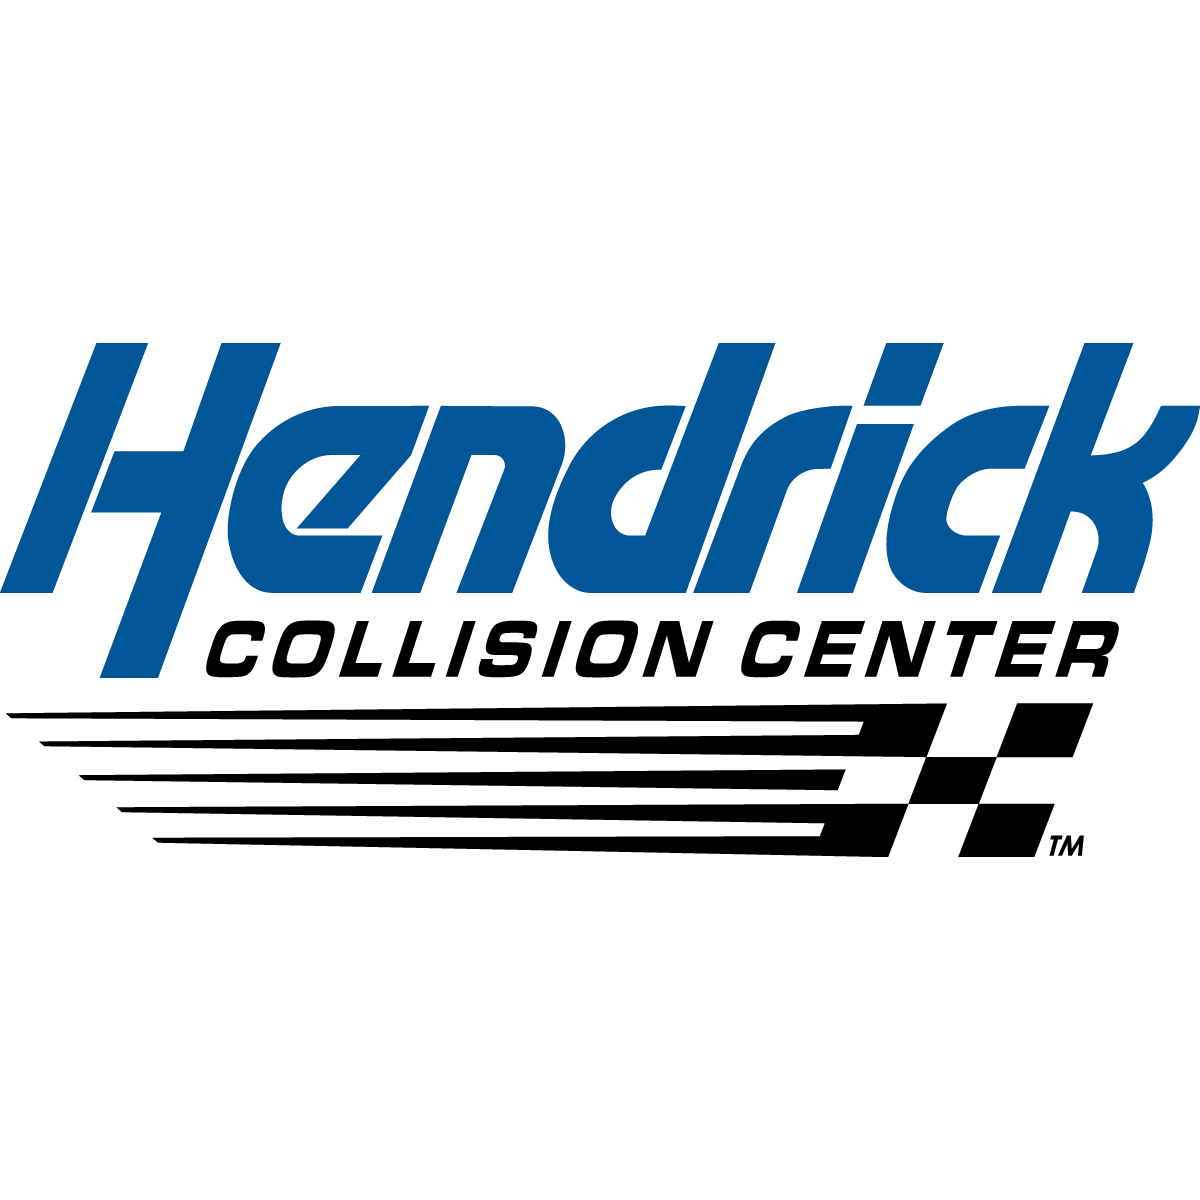 Hendrick Collision Jeff Gordon Chevrolet